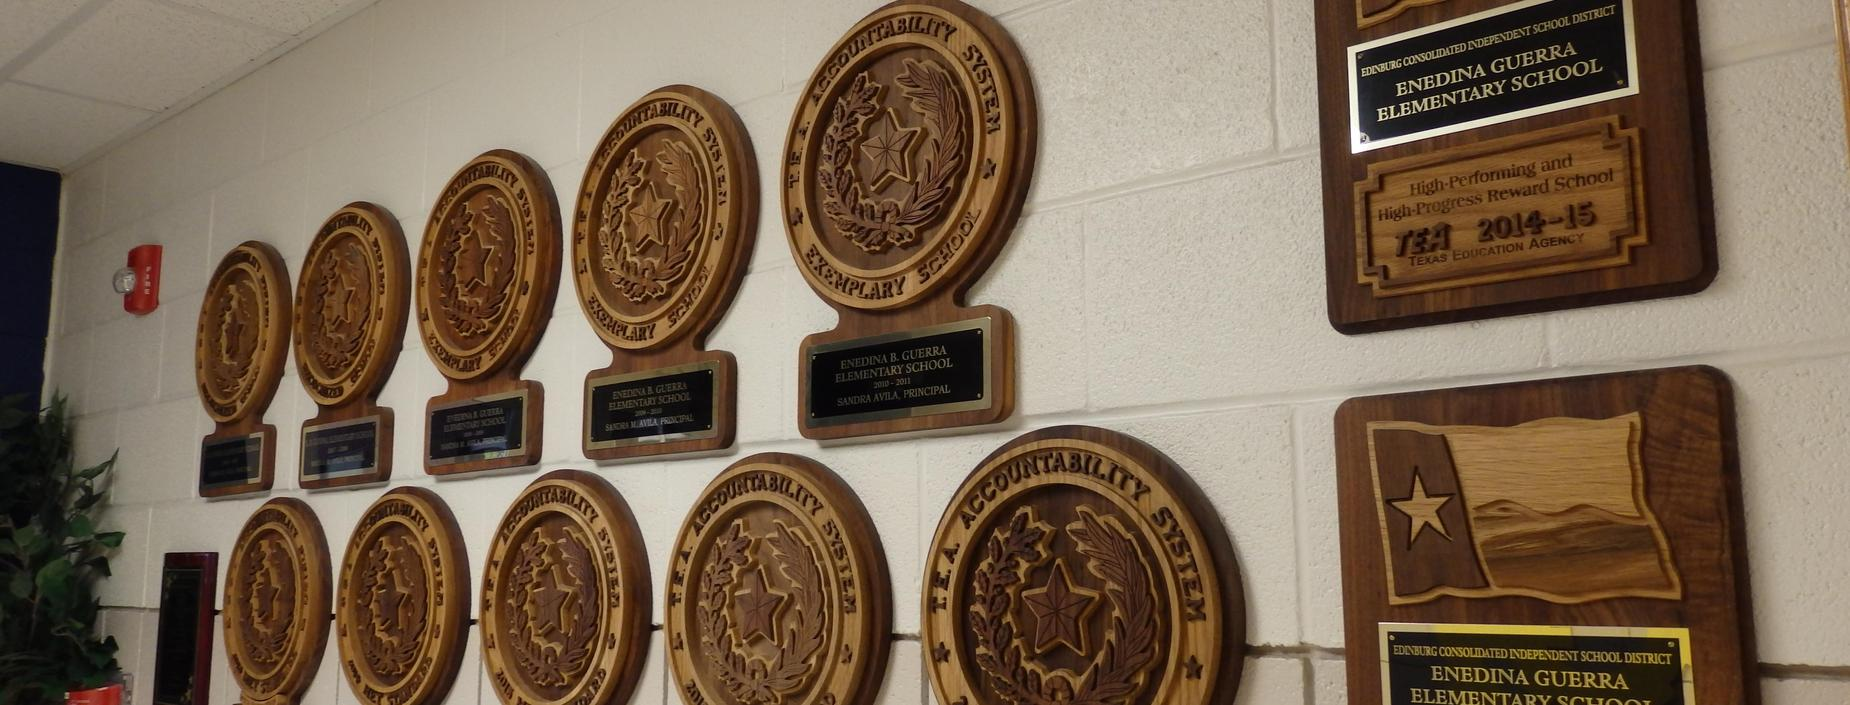 Image of Recognition plaques awarded to Guerra elementary.